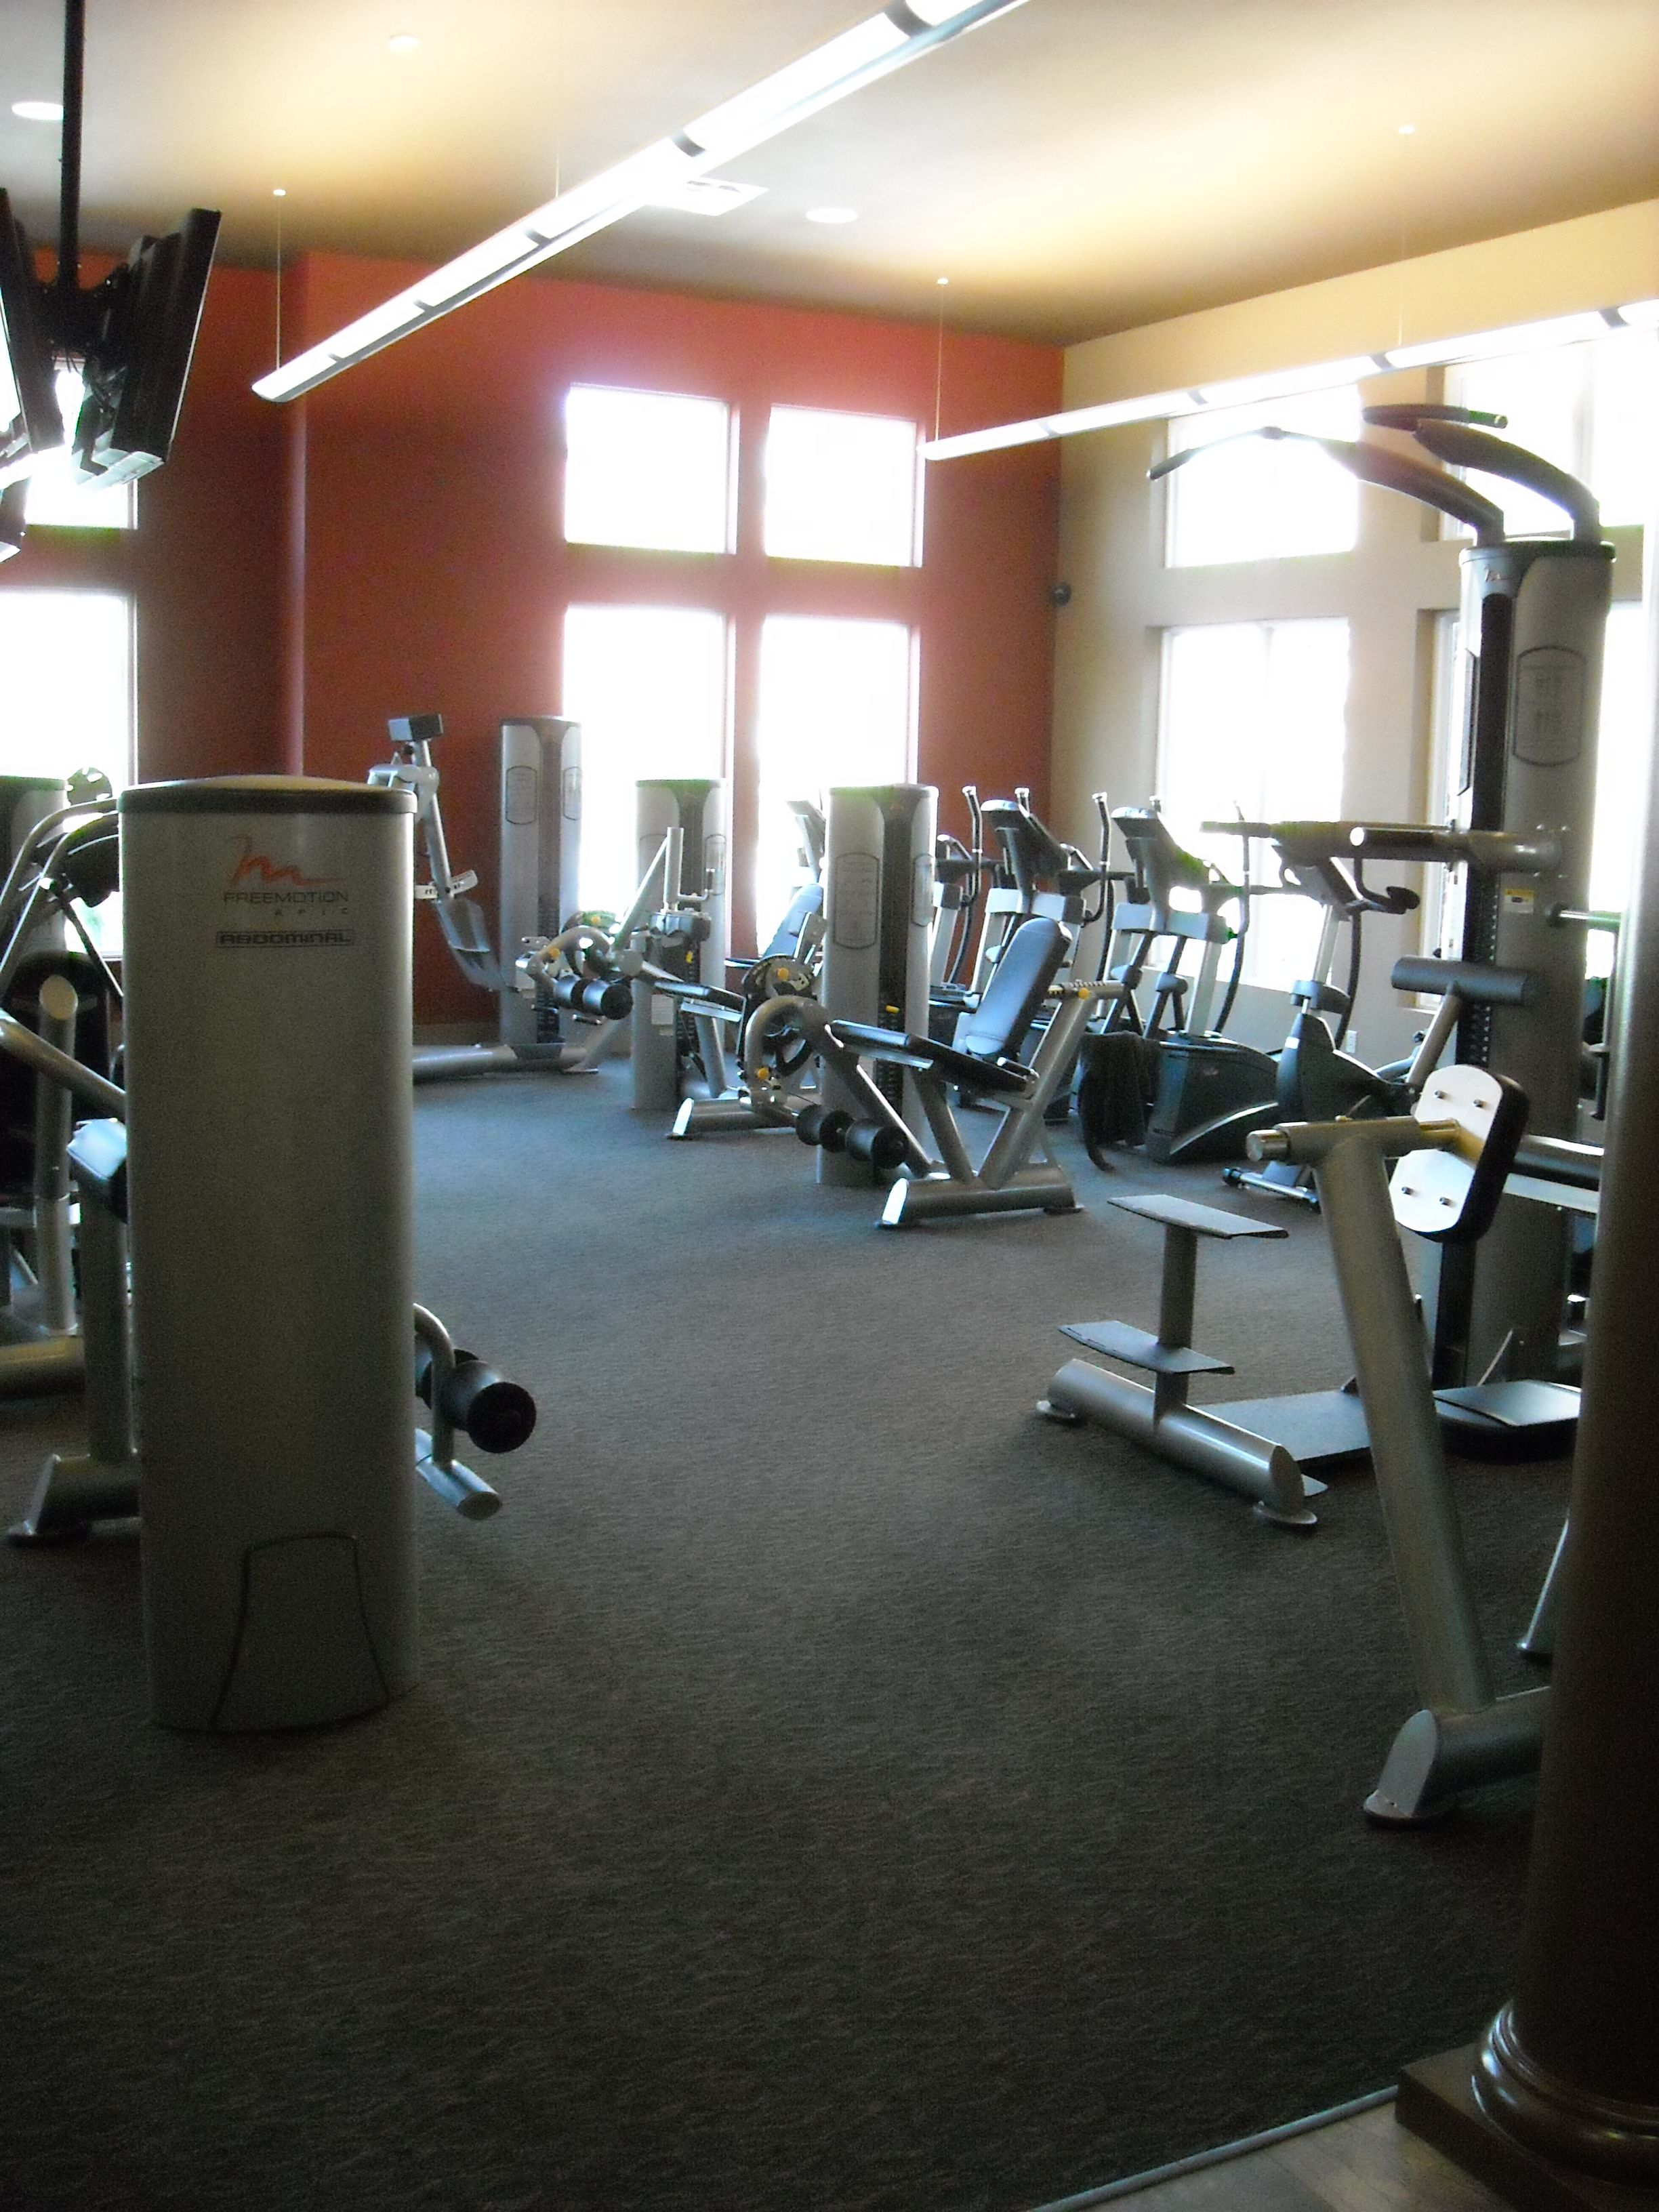 24 Hour Workout Facility Broadmoor Hills Apartment Club House Resort Pools